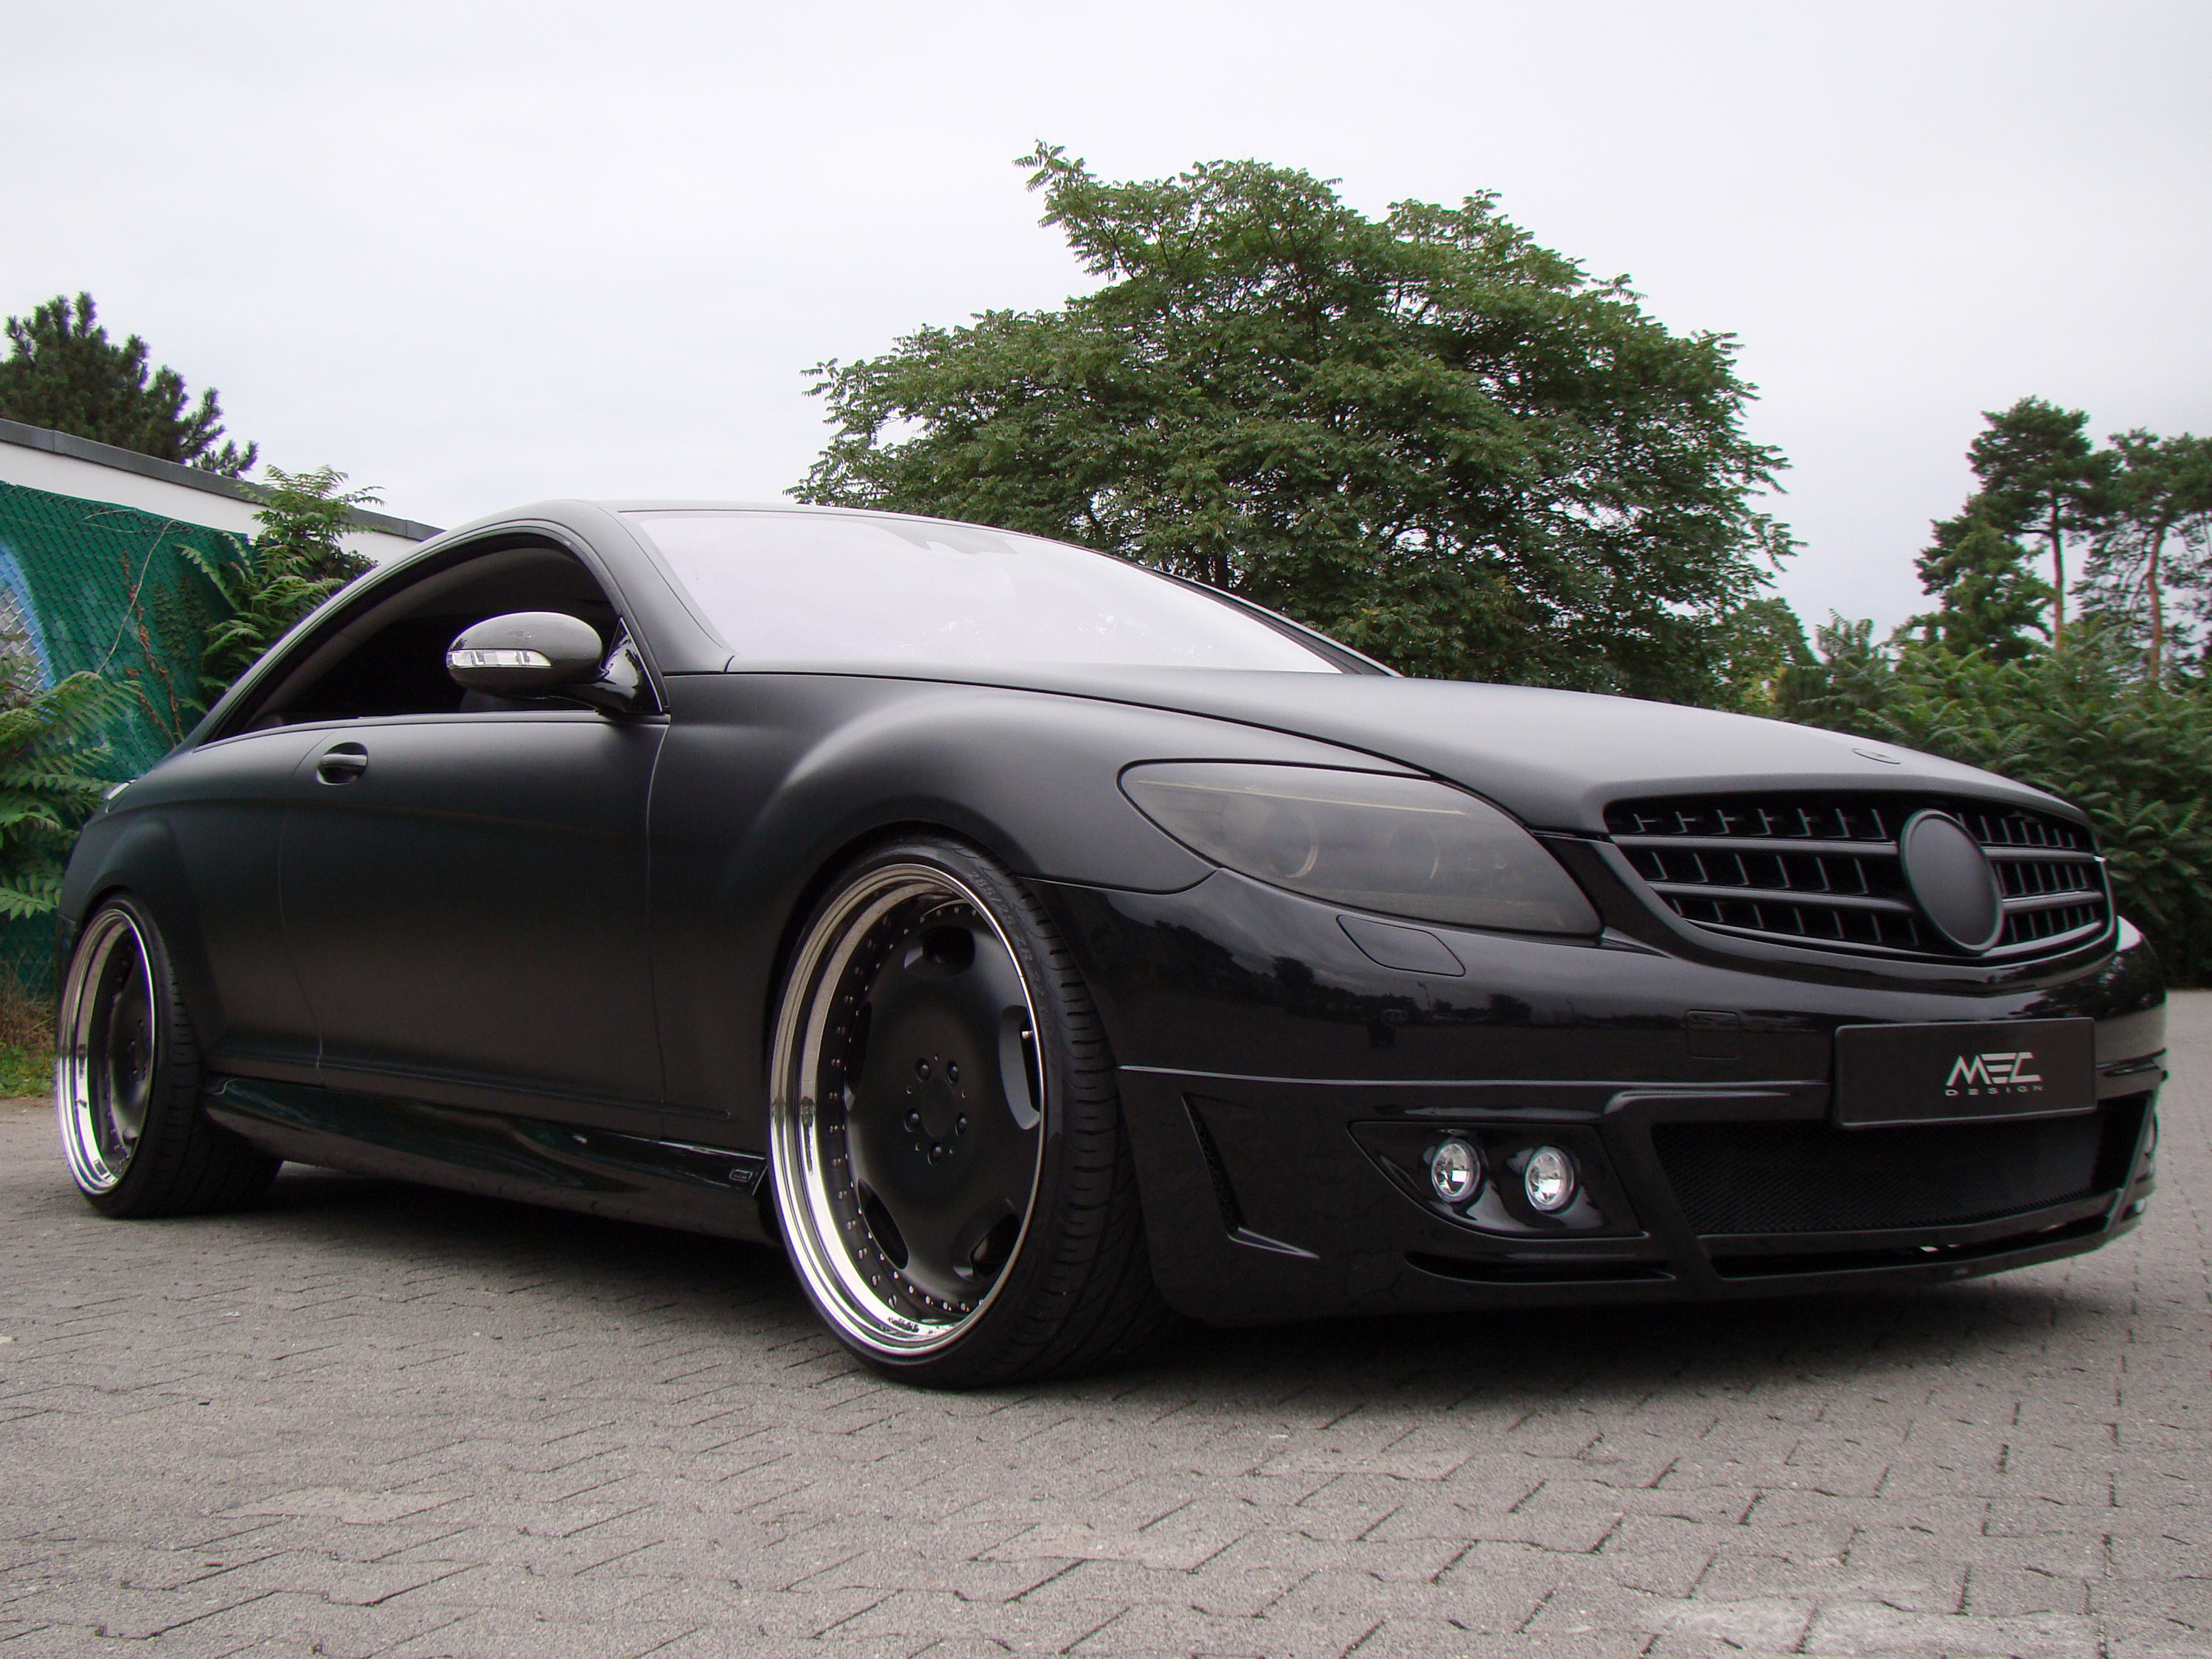 Mec design mercedes benz cl for Benz mercedes suv